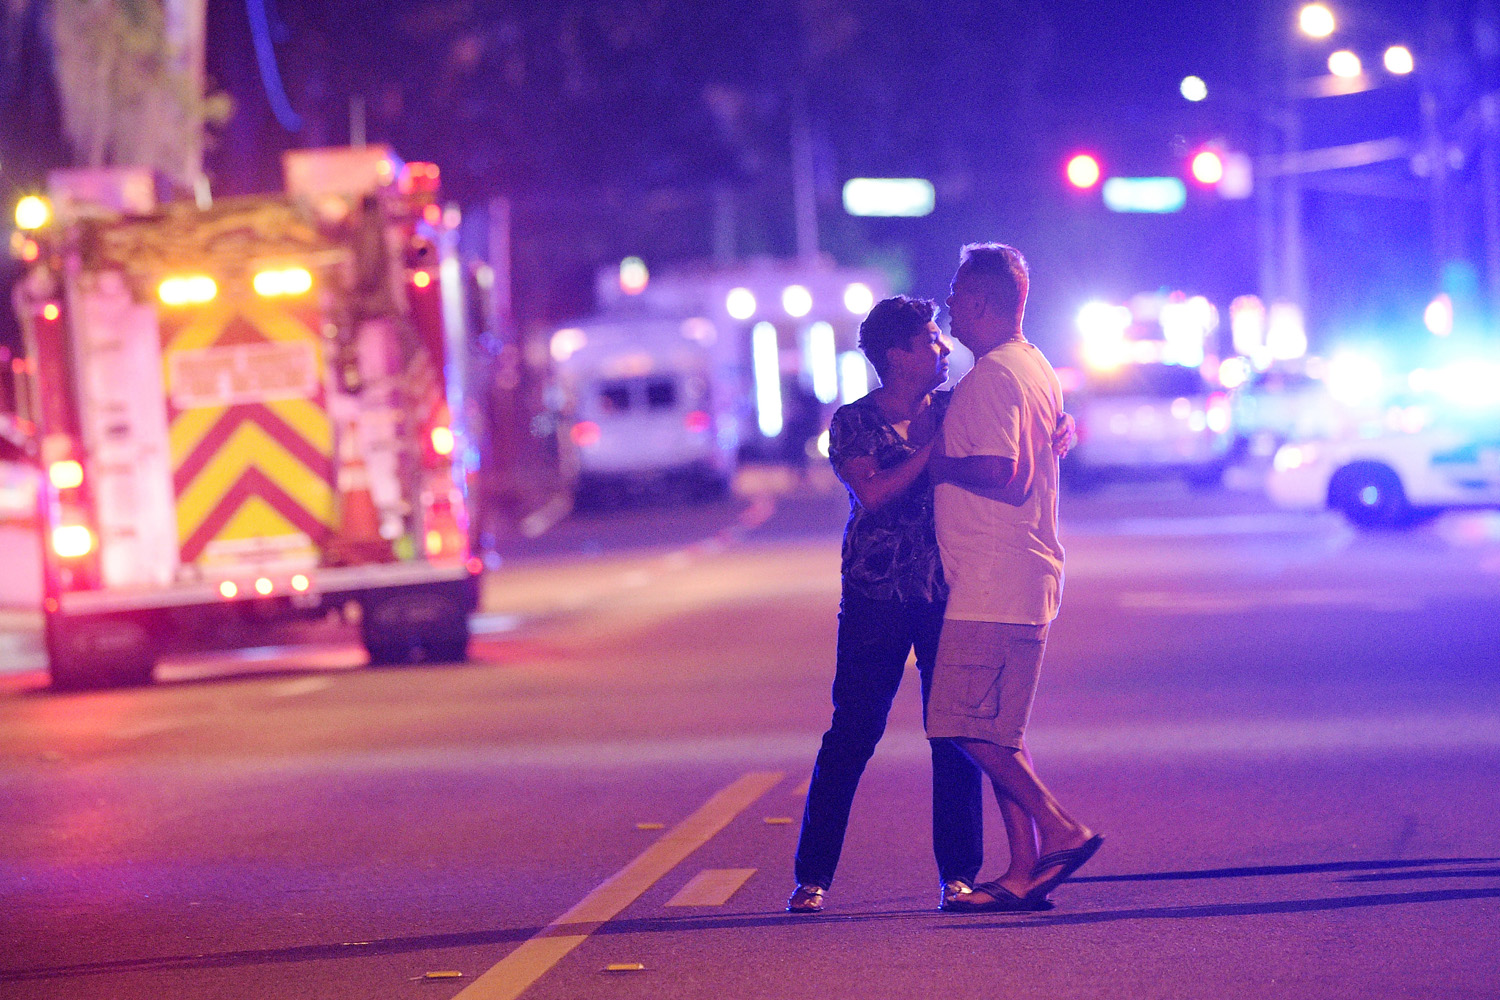 Family members wait for word from police after arriving down the street from a shooting involving multiple fatalities at Pulse Orlando nightclub in Orlando, Fla., Sunday, June 12, 2016. (Phelan M. Ebenhack / AP)